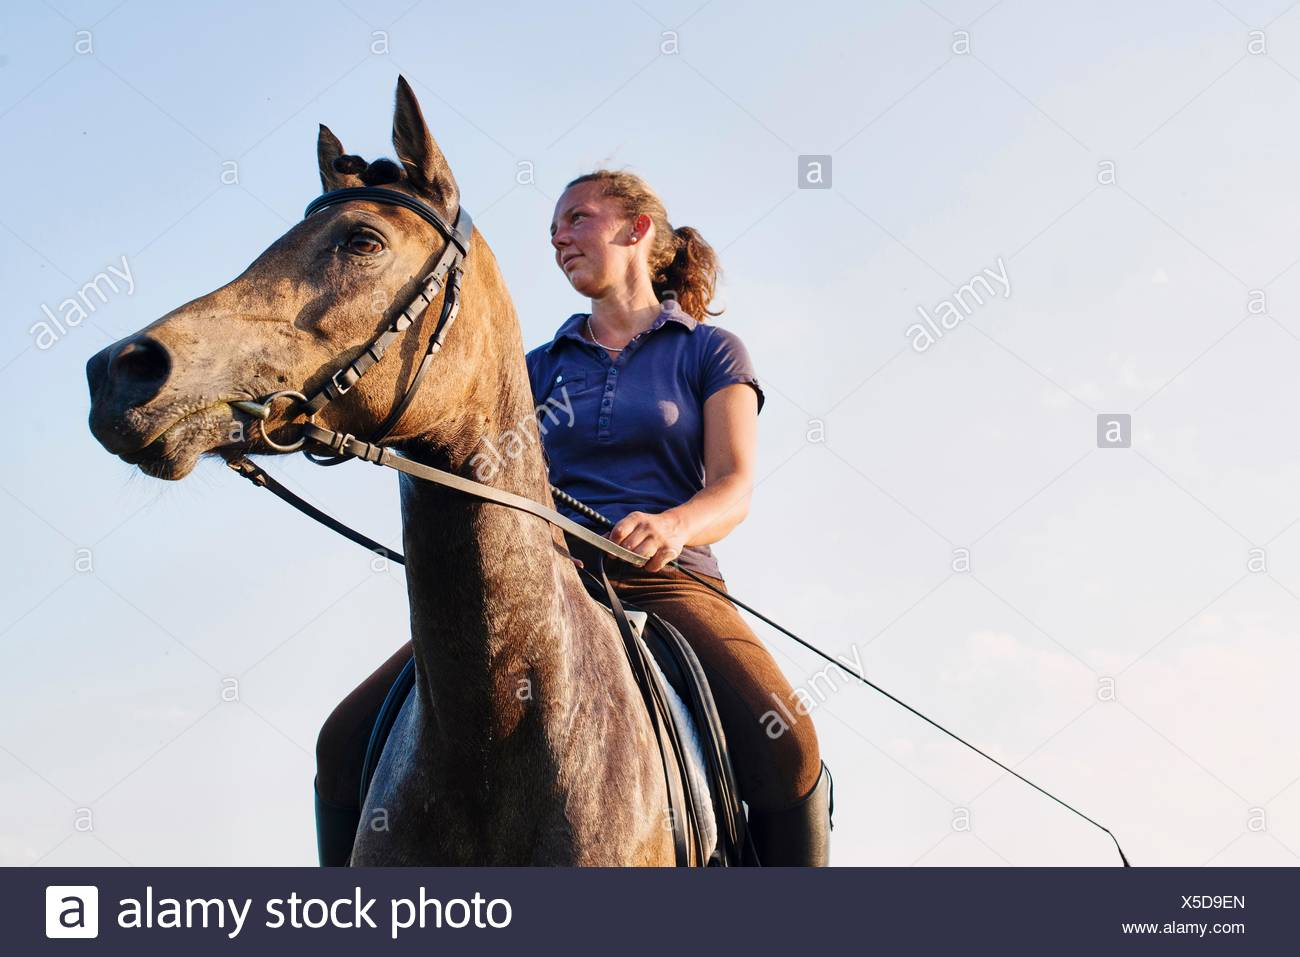 Low angle view of woman riding bay horse against blue sky - Stock Image